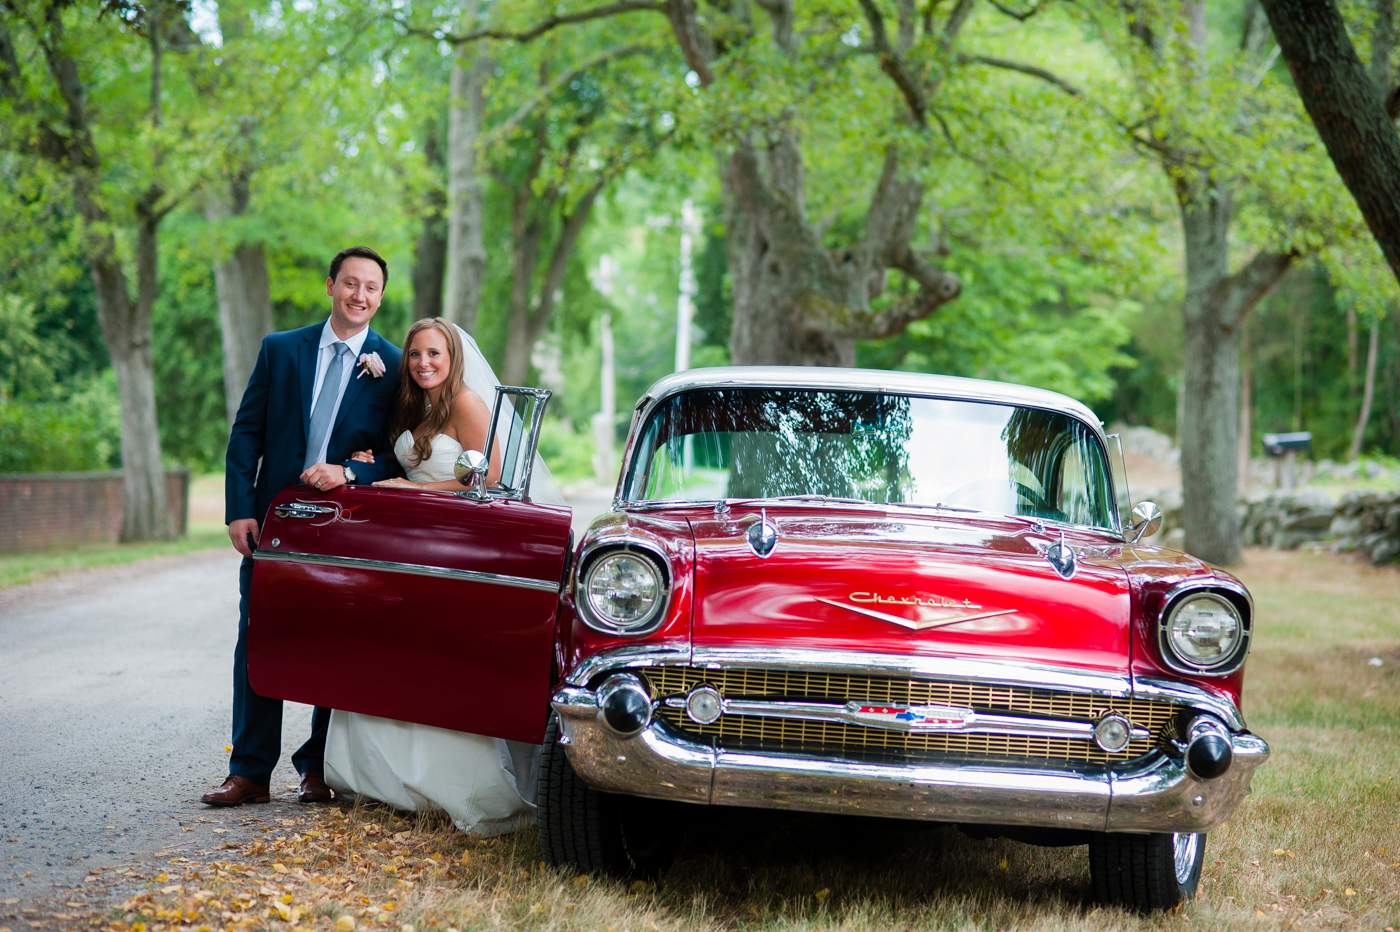 asheville bride and groom pose with gorgeous red vintage car